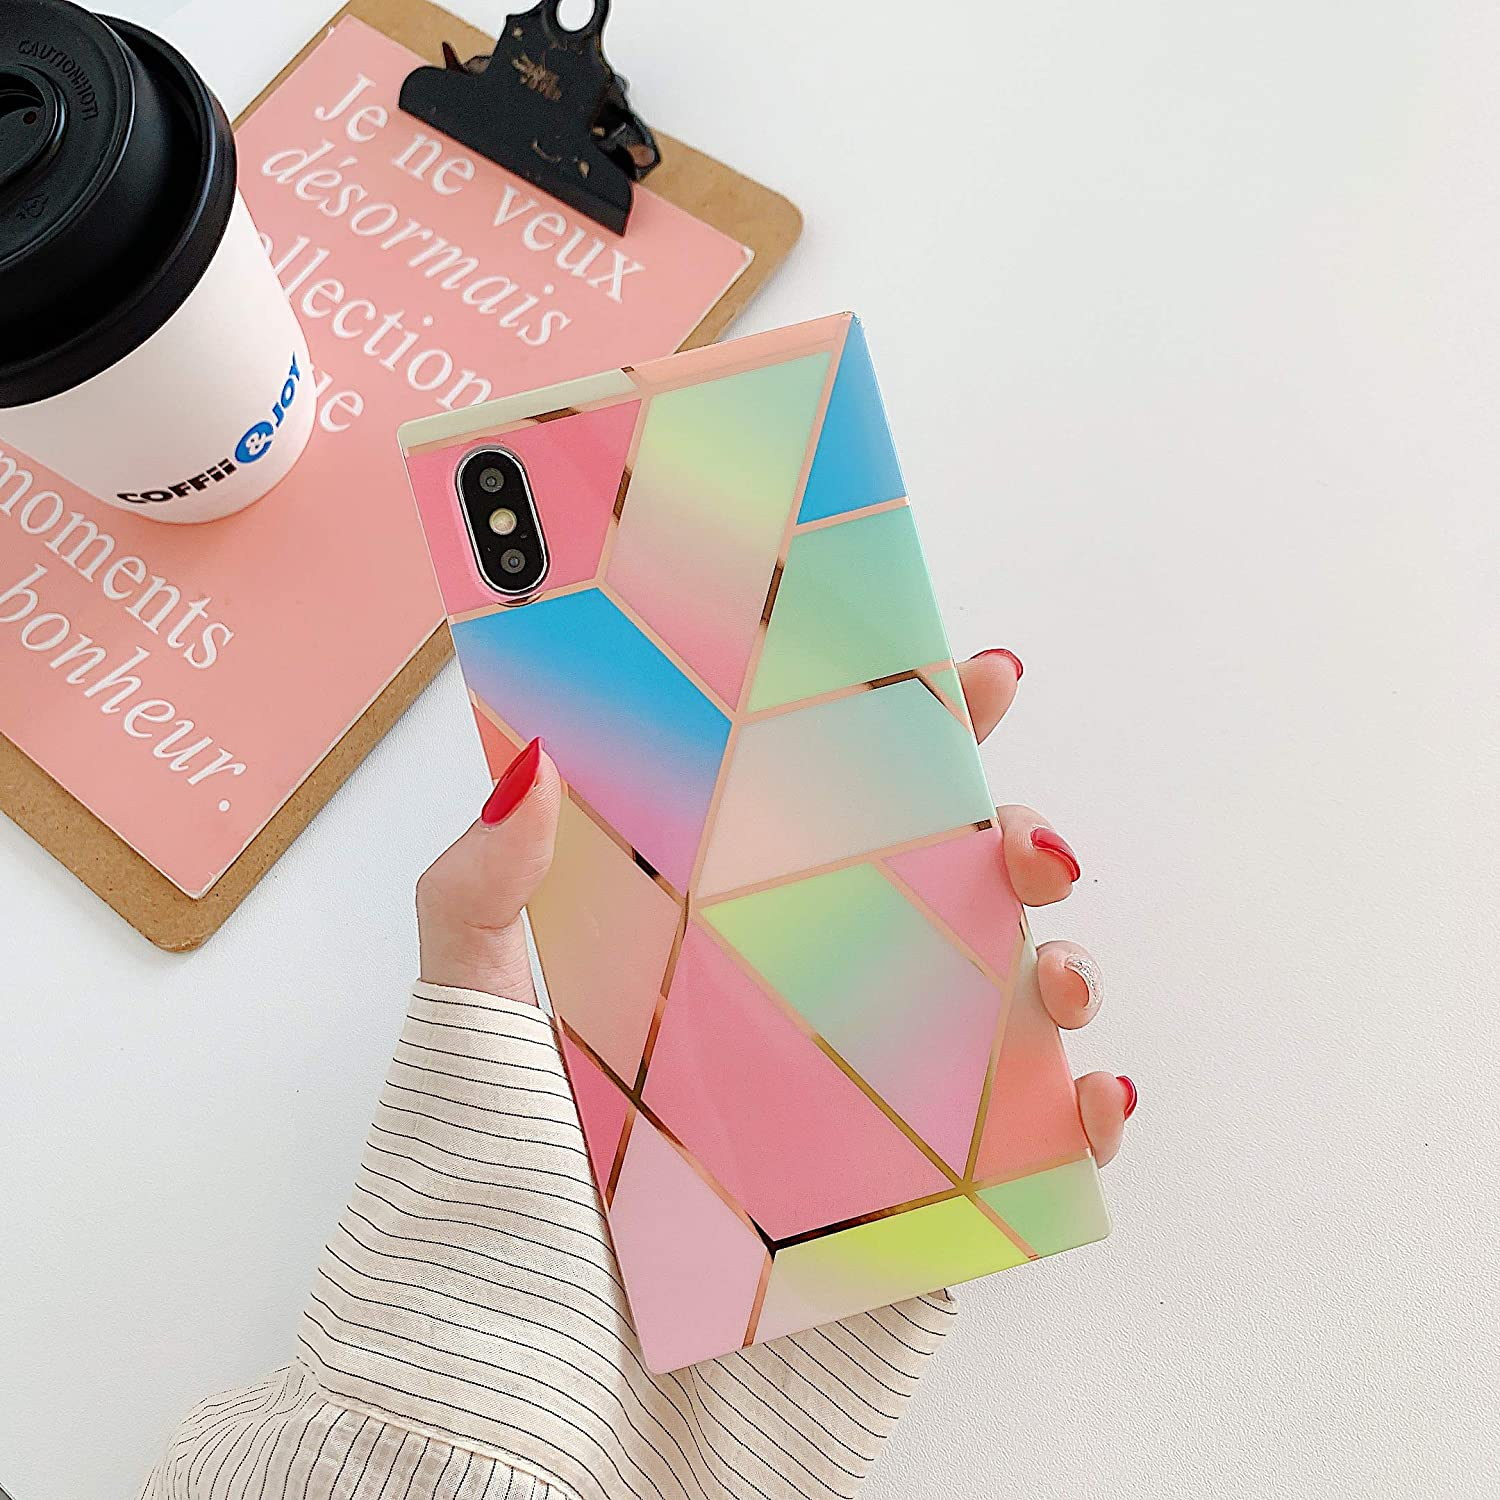 Cocomii Square Geometric Marble iPhone 6S/6 Case, Slim Thin Glossy Soft Flexible TPU Silicone Rubber Gel Shiny Reflective Streaks Fashion Bumper Cover Compatible with Apple iPhone 6S/6 (Rainbow)